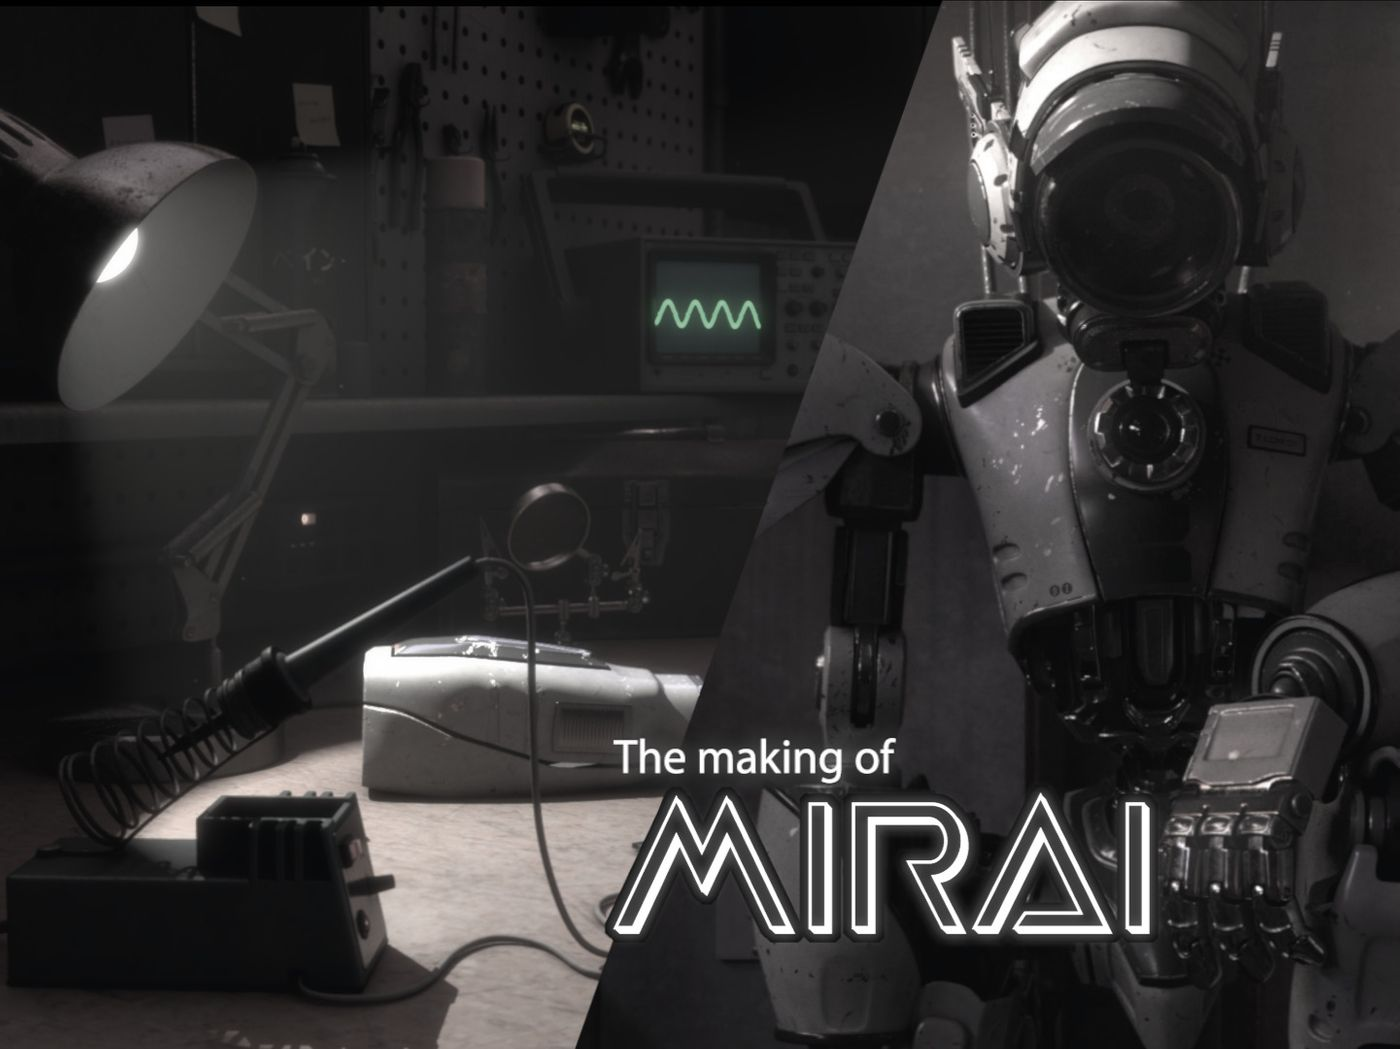 The making of MIRAI